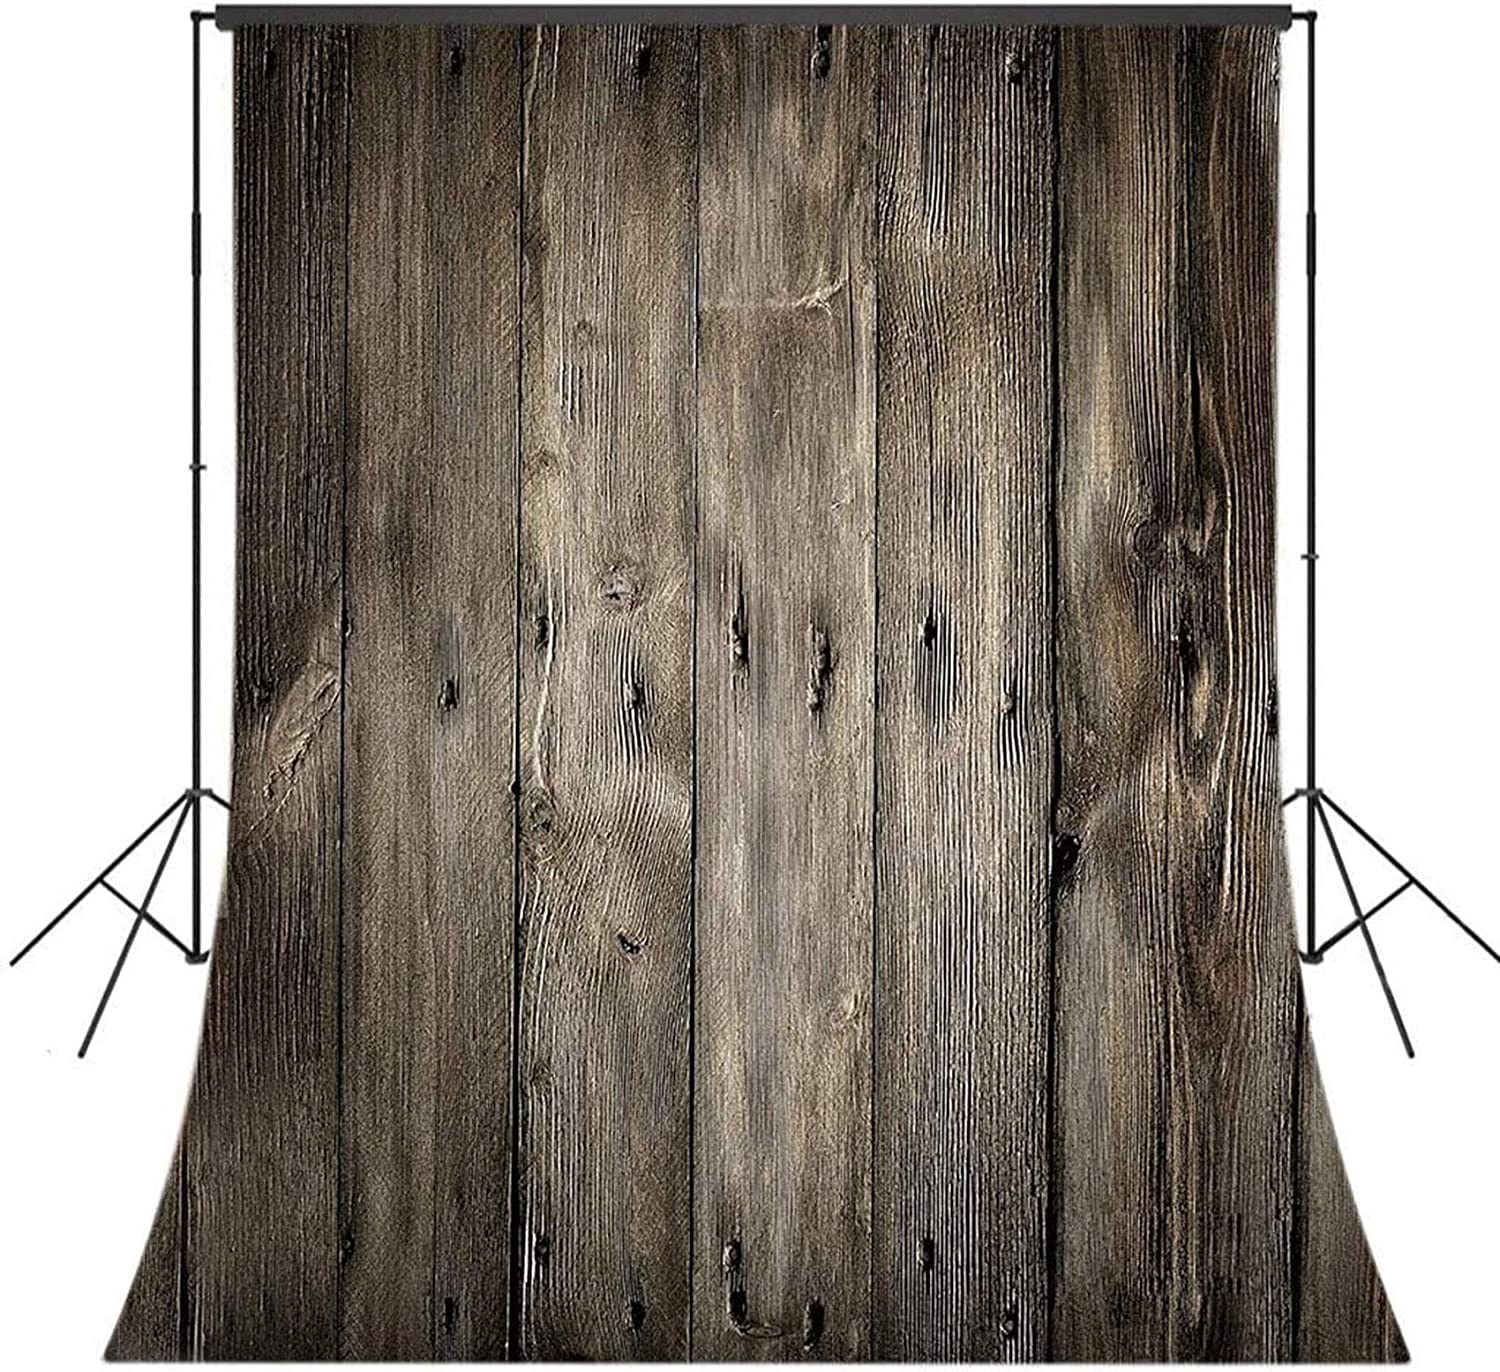 Zhy 7X5ft Gray Wooden Grain Wall Backdrop Retro Mottled Wood Floor Photography Background Child Newborn Baby Shower Photo Backdrop Stuido Booth Props CHE027